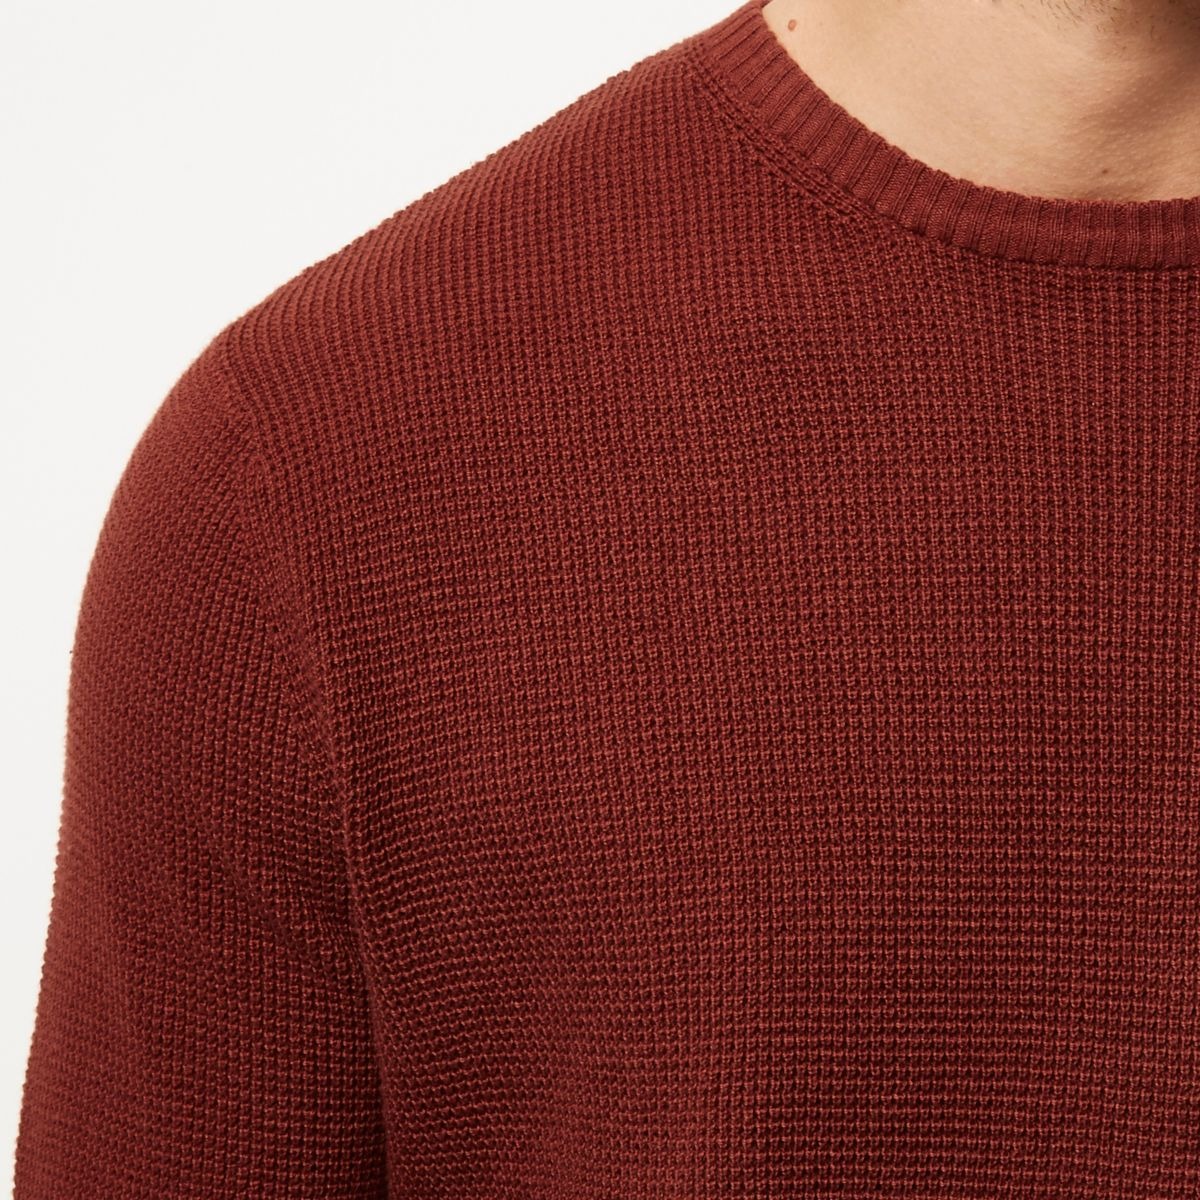 Dark orange textured sweater